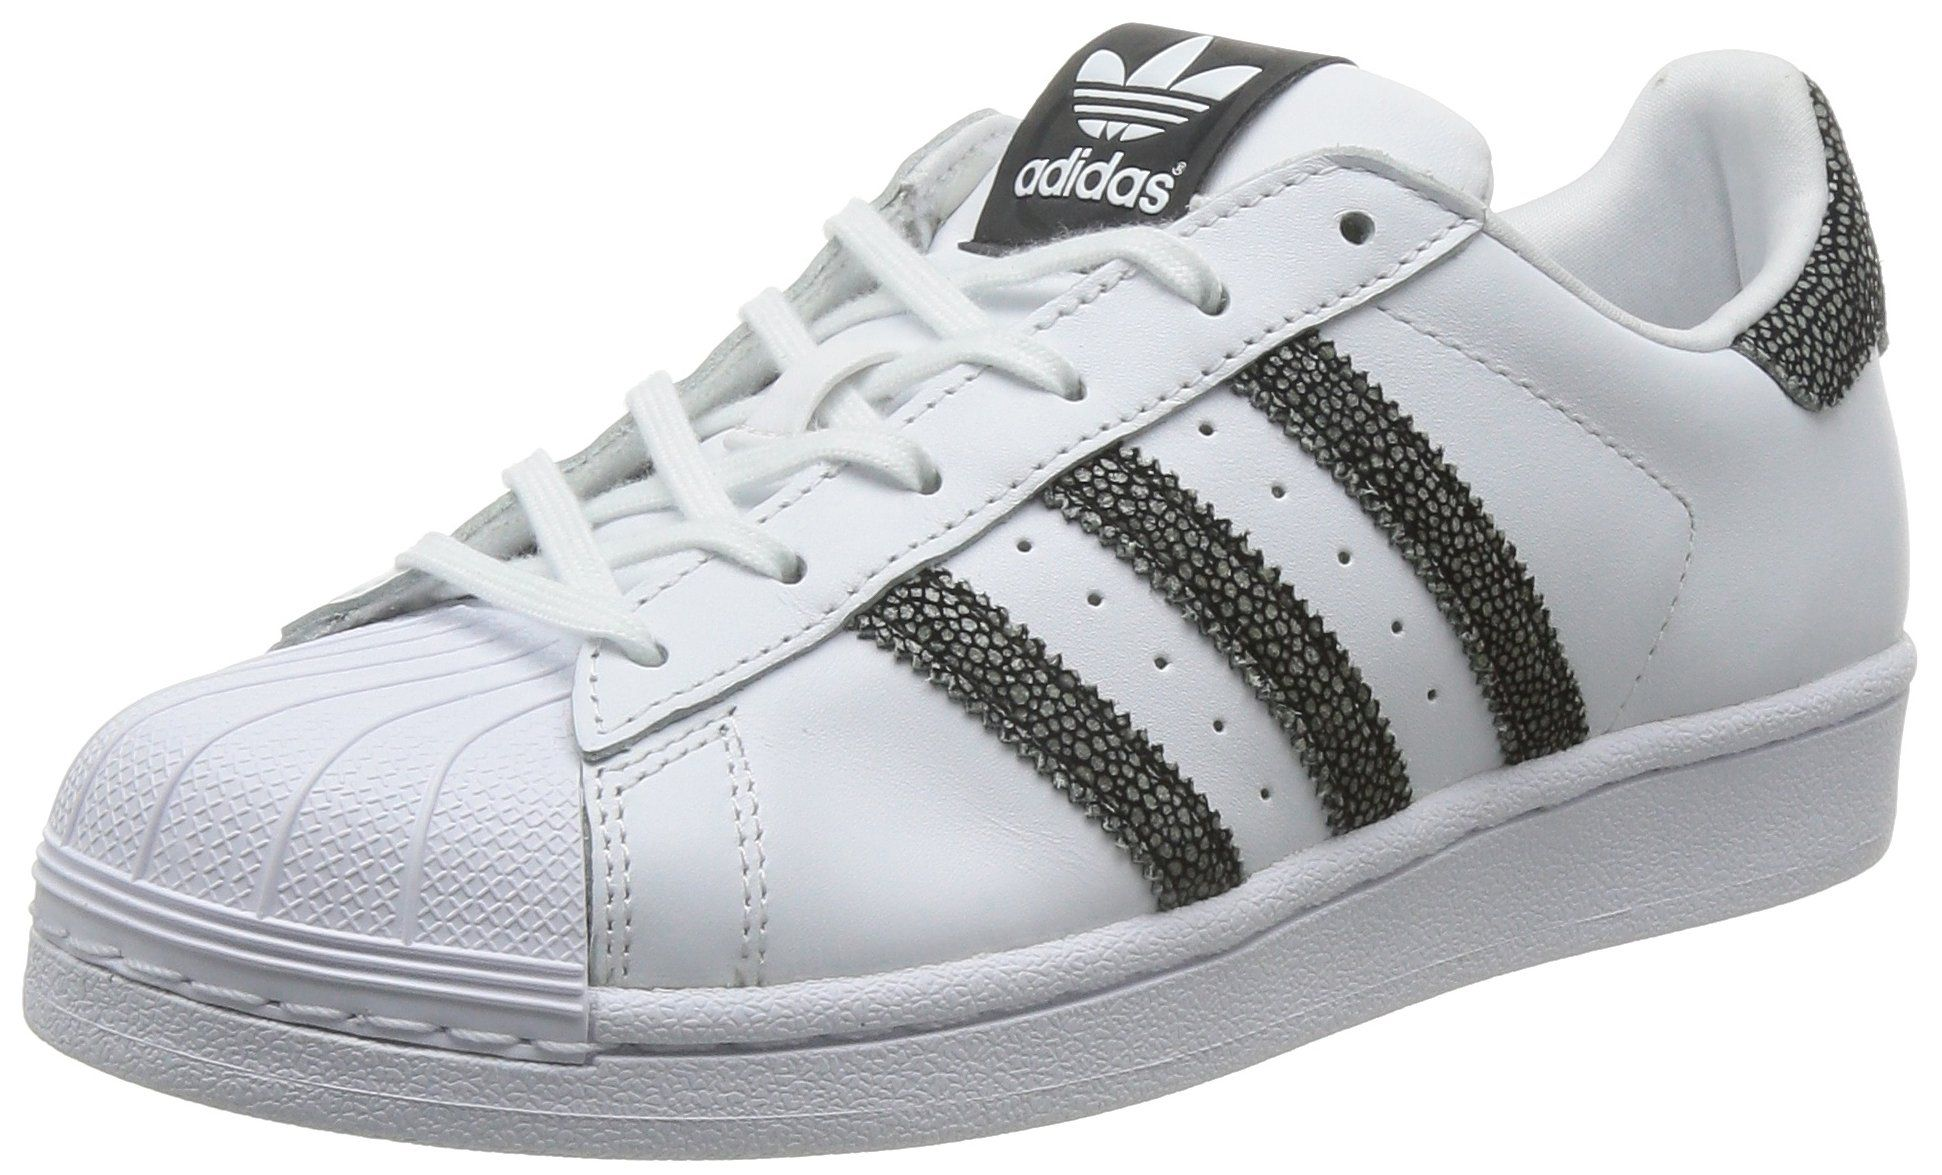 newest 18944 f2e57 adidas Superstar W - Zapatillas de running para mujer, color blanco   negro,  talla 38 2 3